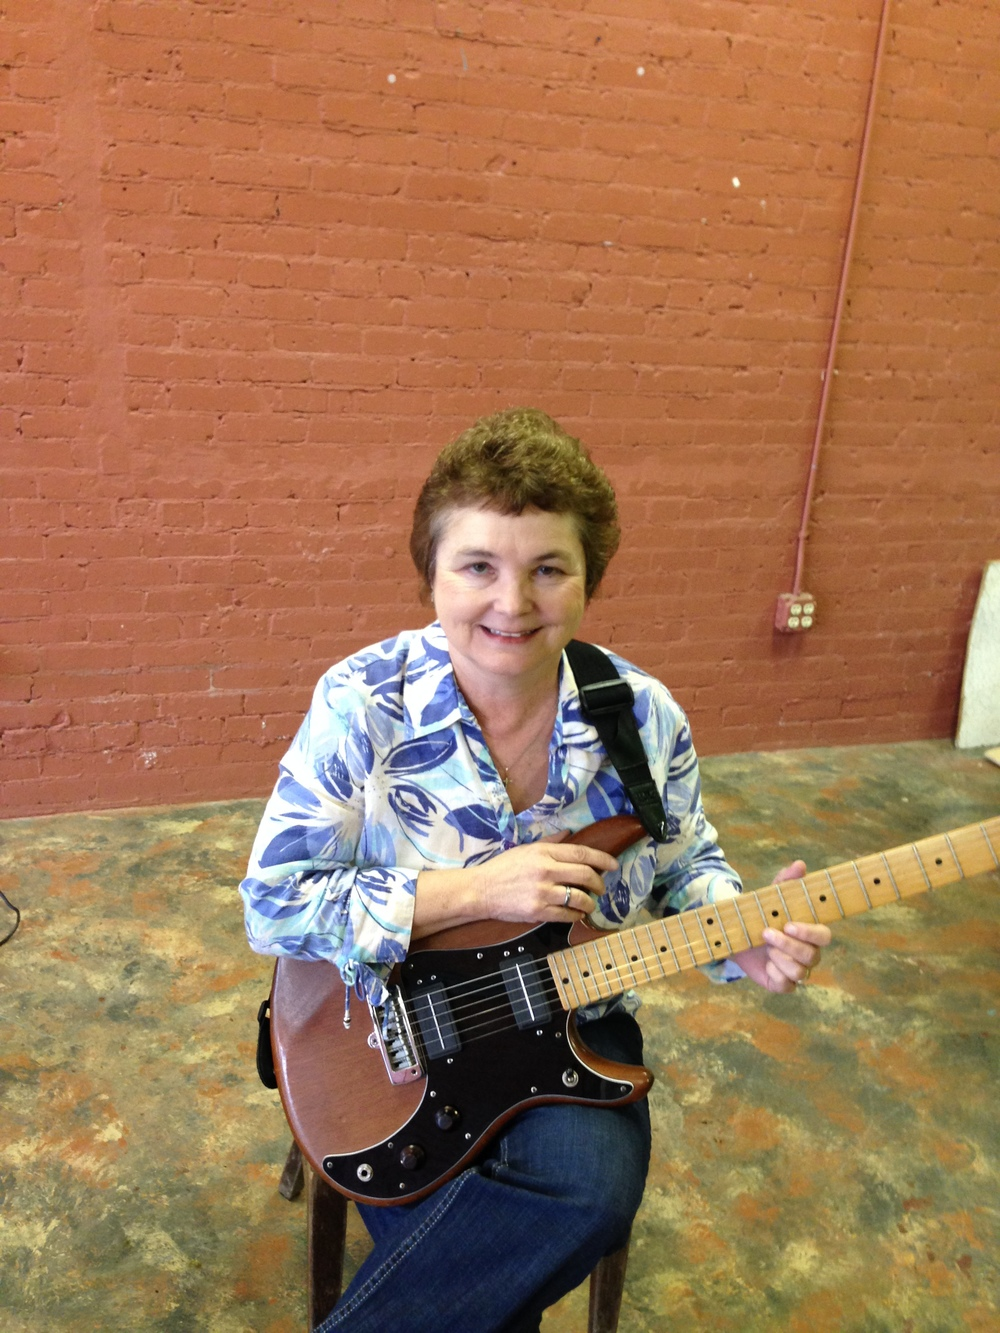 """I am a new guitar student and started taking lessons from Stuart in March 2015.  He is very knowledgeable, patient and helpful.  Stuart is a great teacher and I enjoy my lessons and would highly recommend him!""                                                                -Mary Ann Wylie"